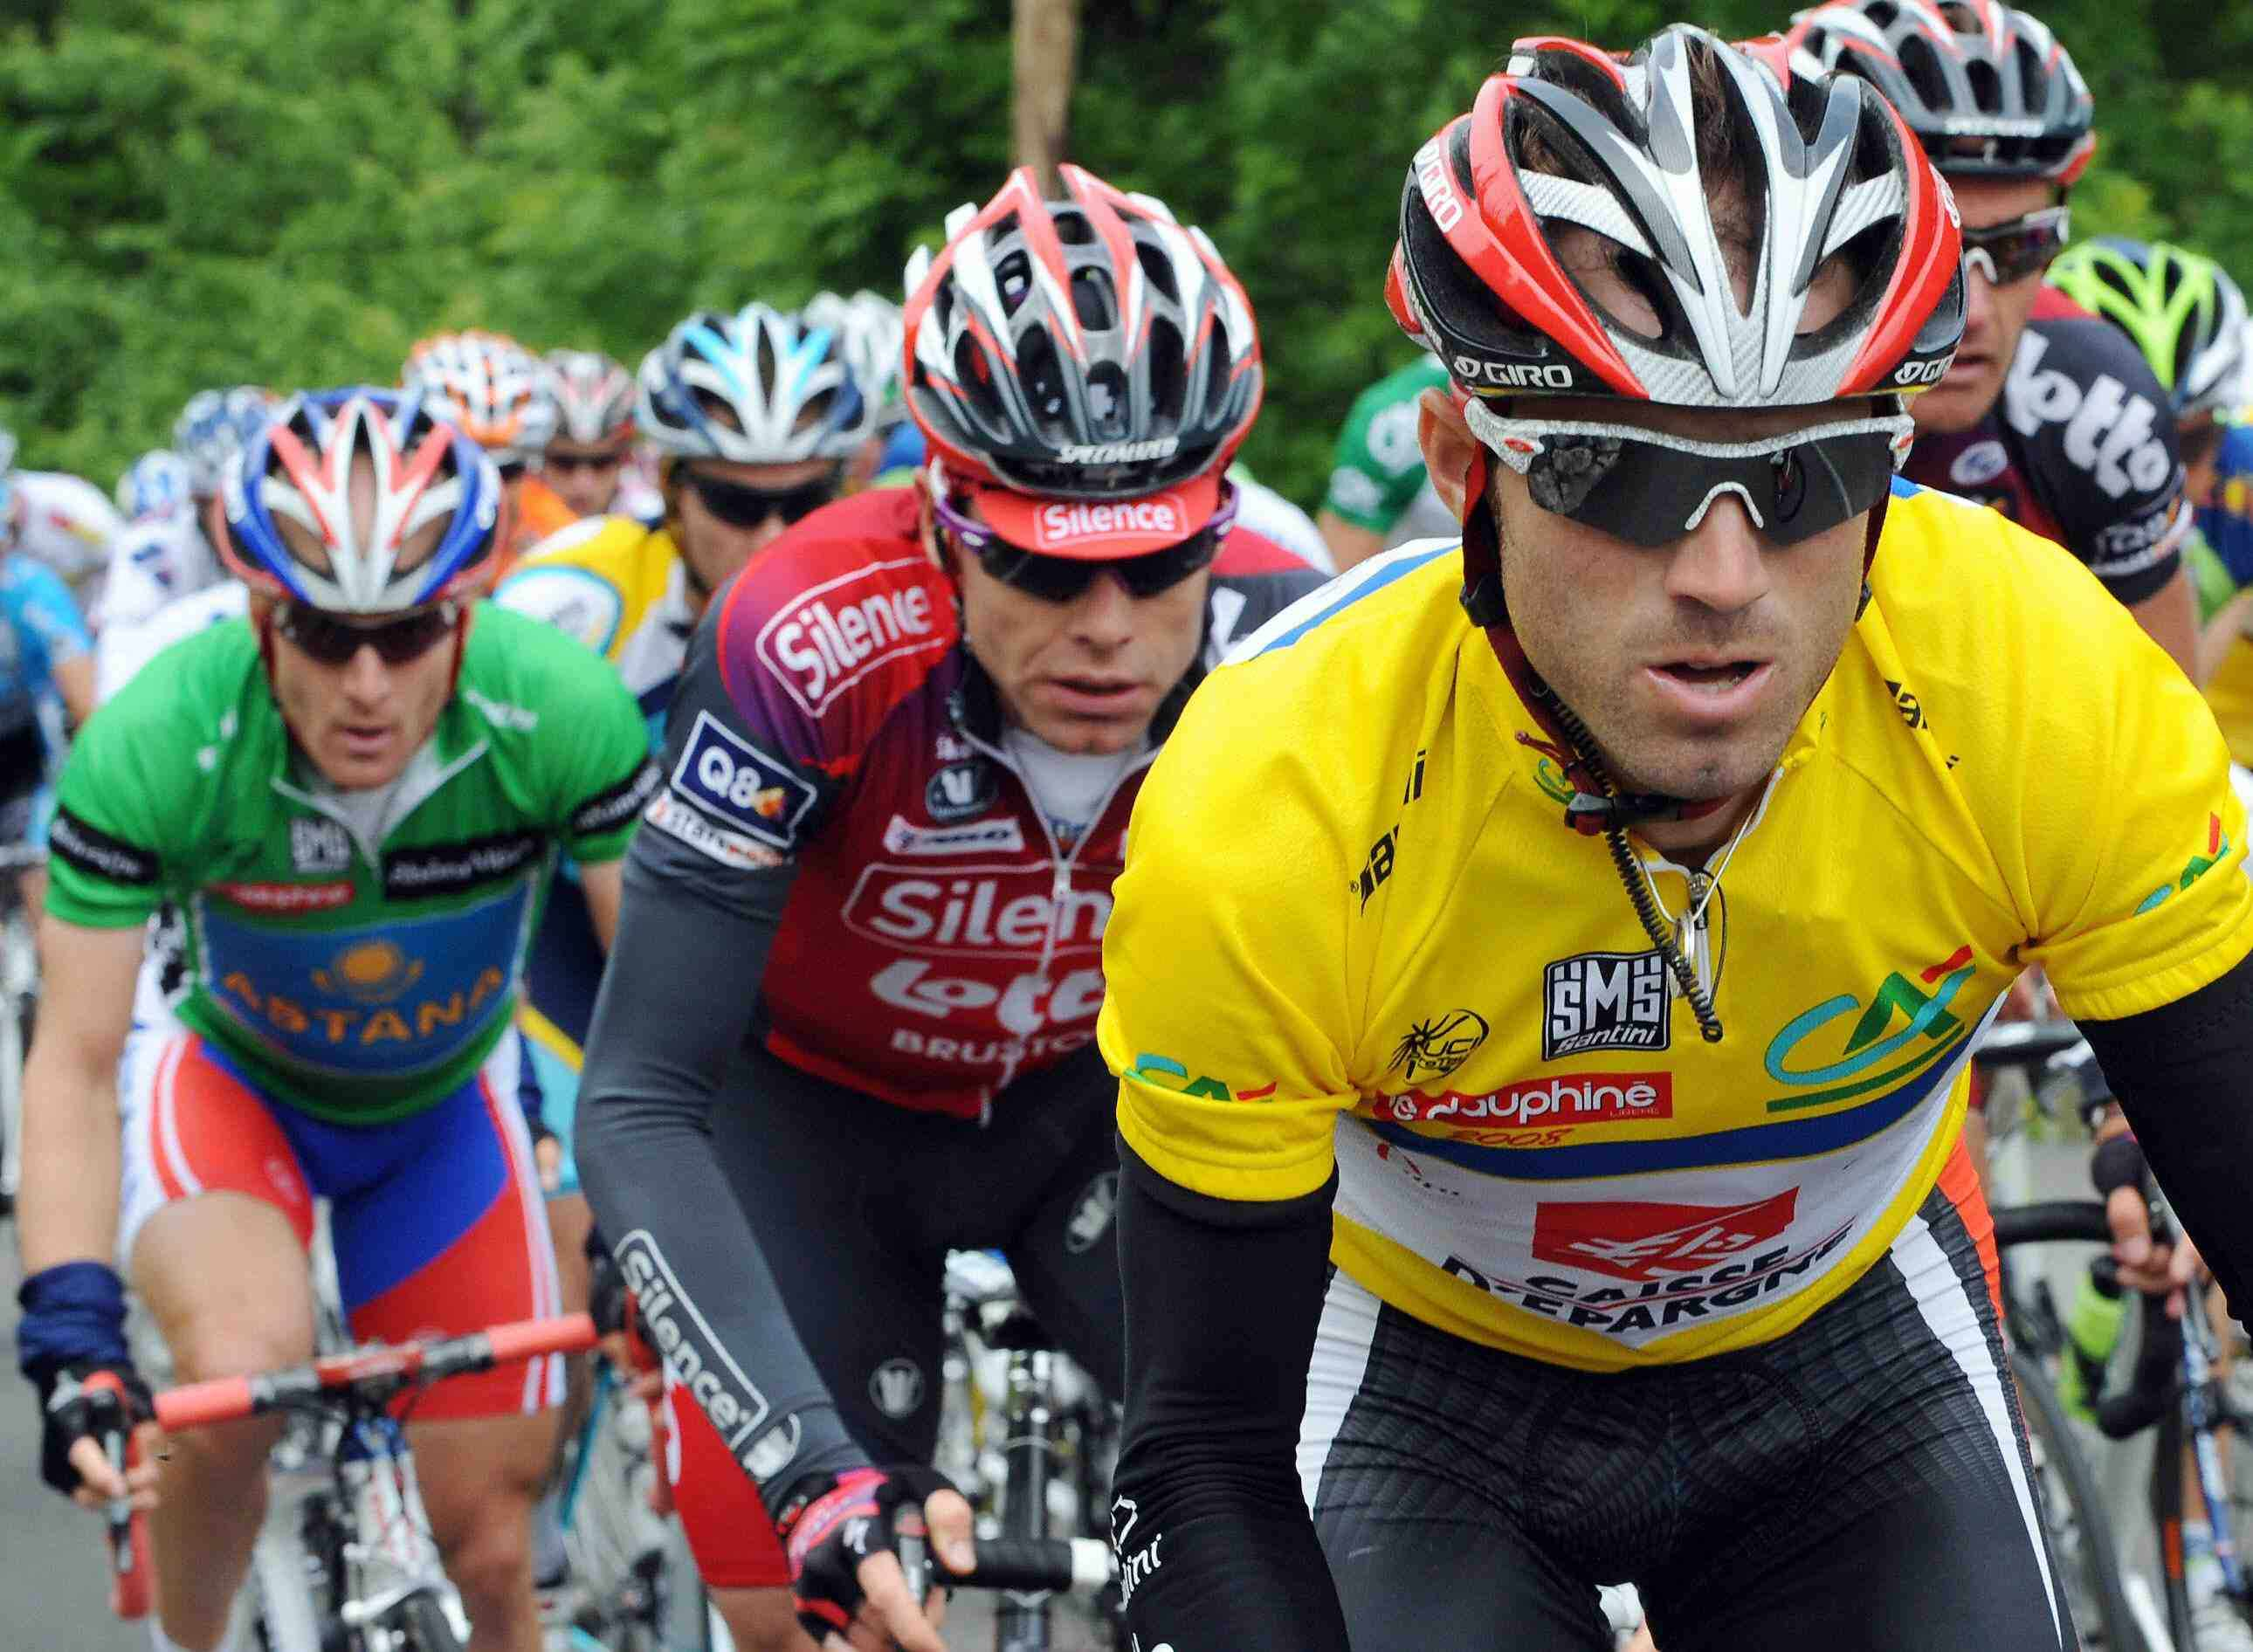 Alejandro Valverde (R) won the recent Dauphine Libere in front of Cadel Evans (C).